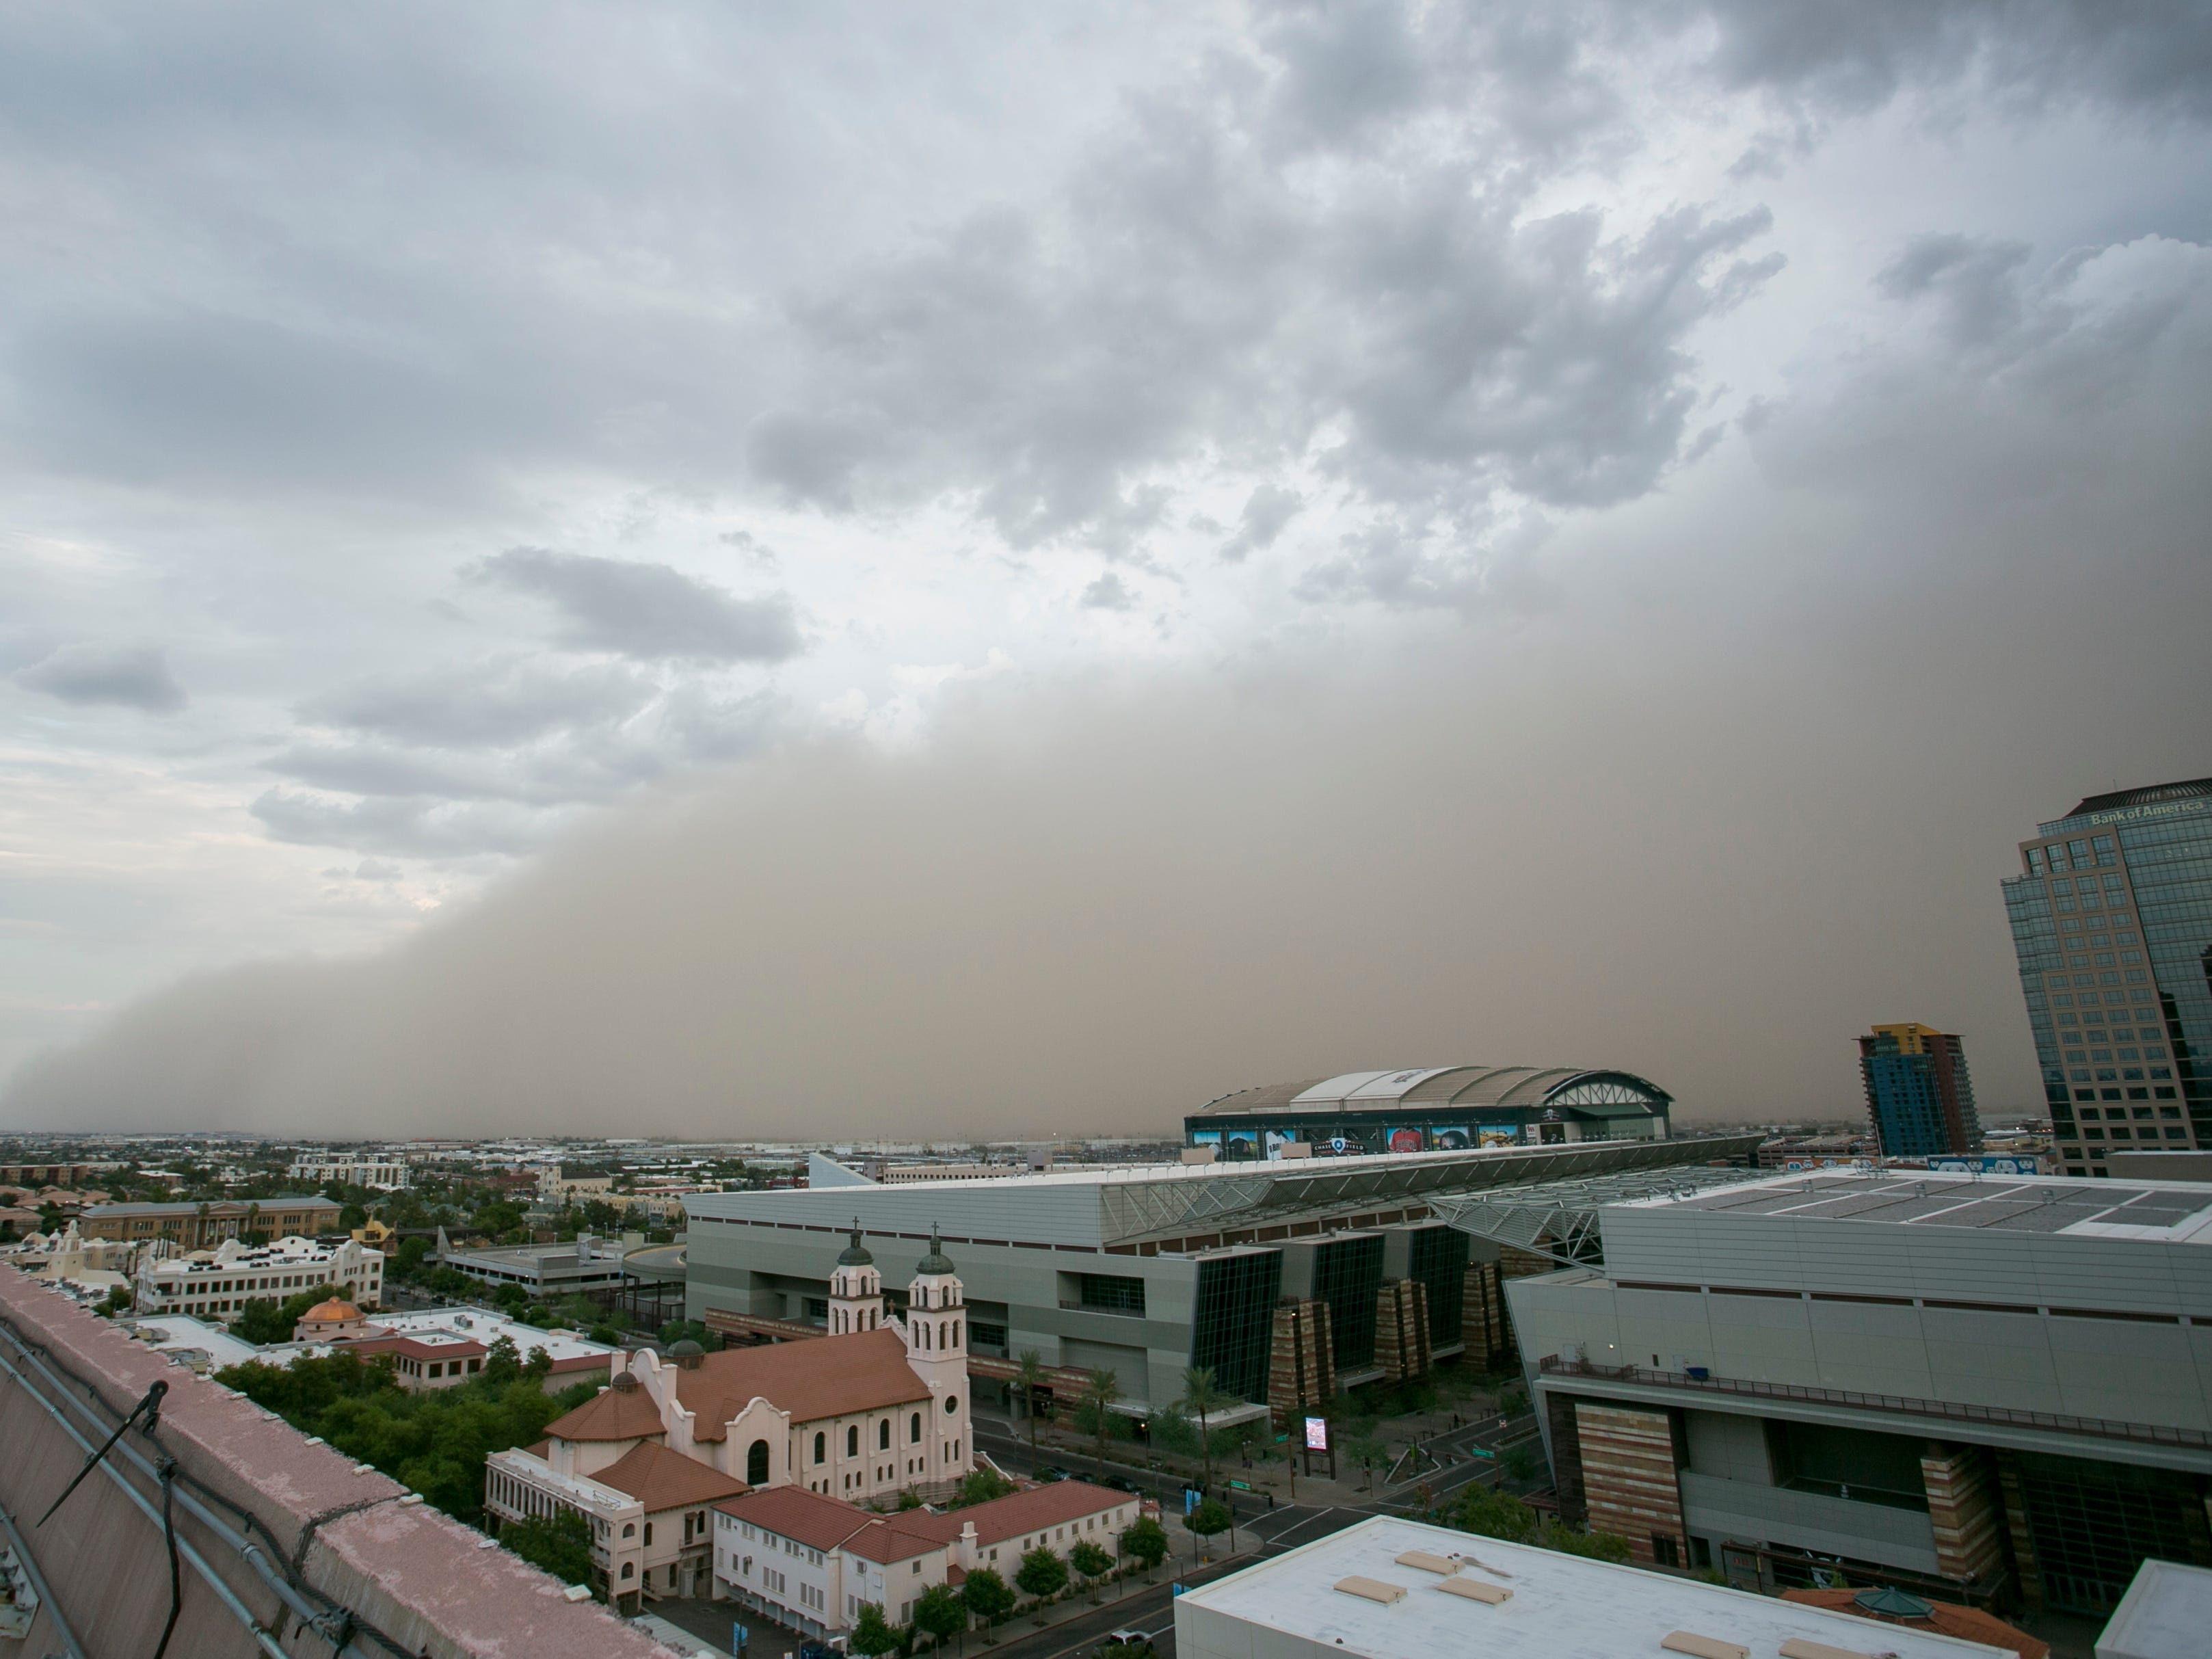 A dust storm approaches downtown Phoenix, Ariz. on Thur. Aug 2, 2018.